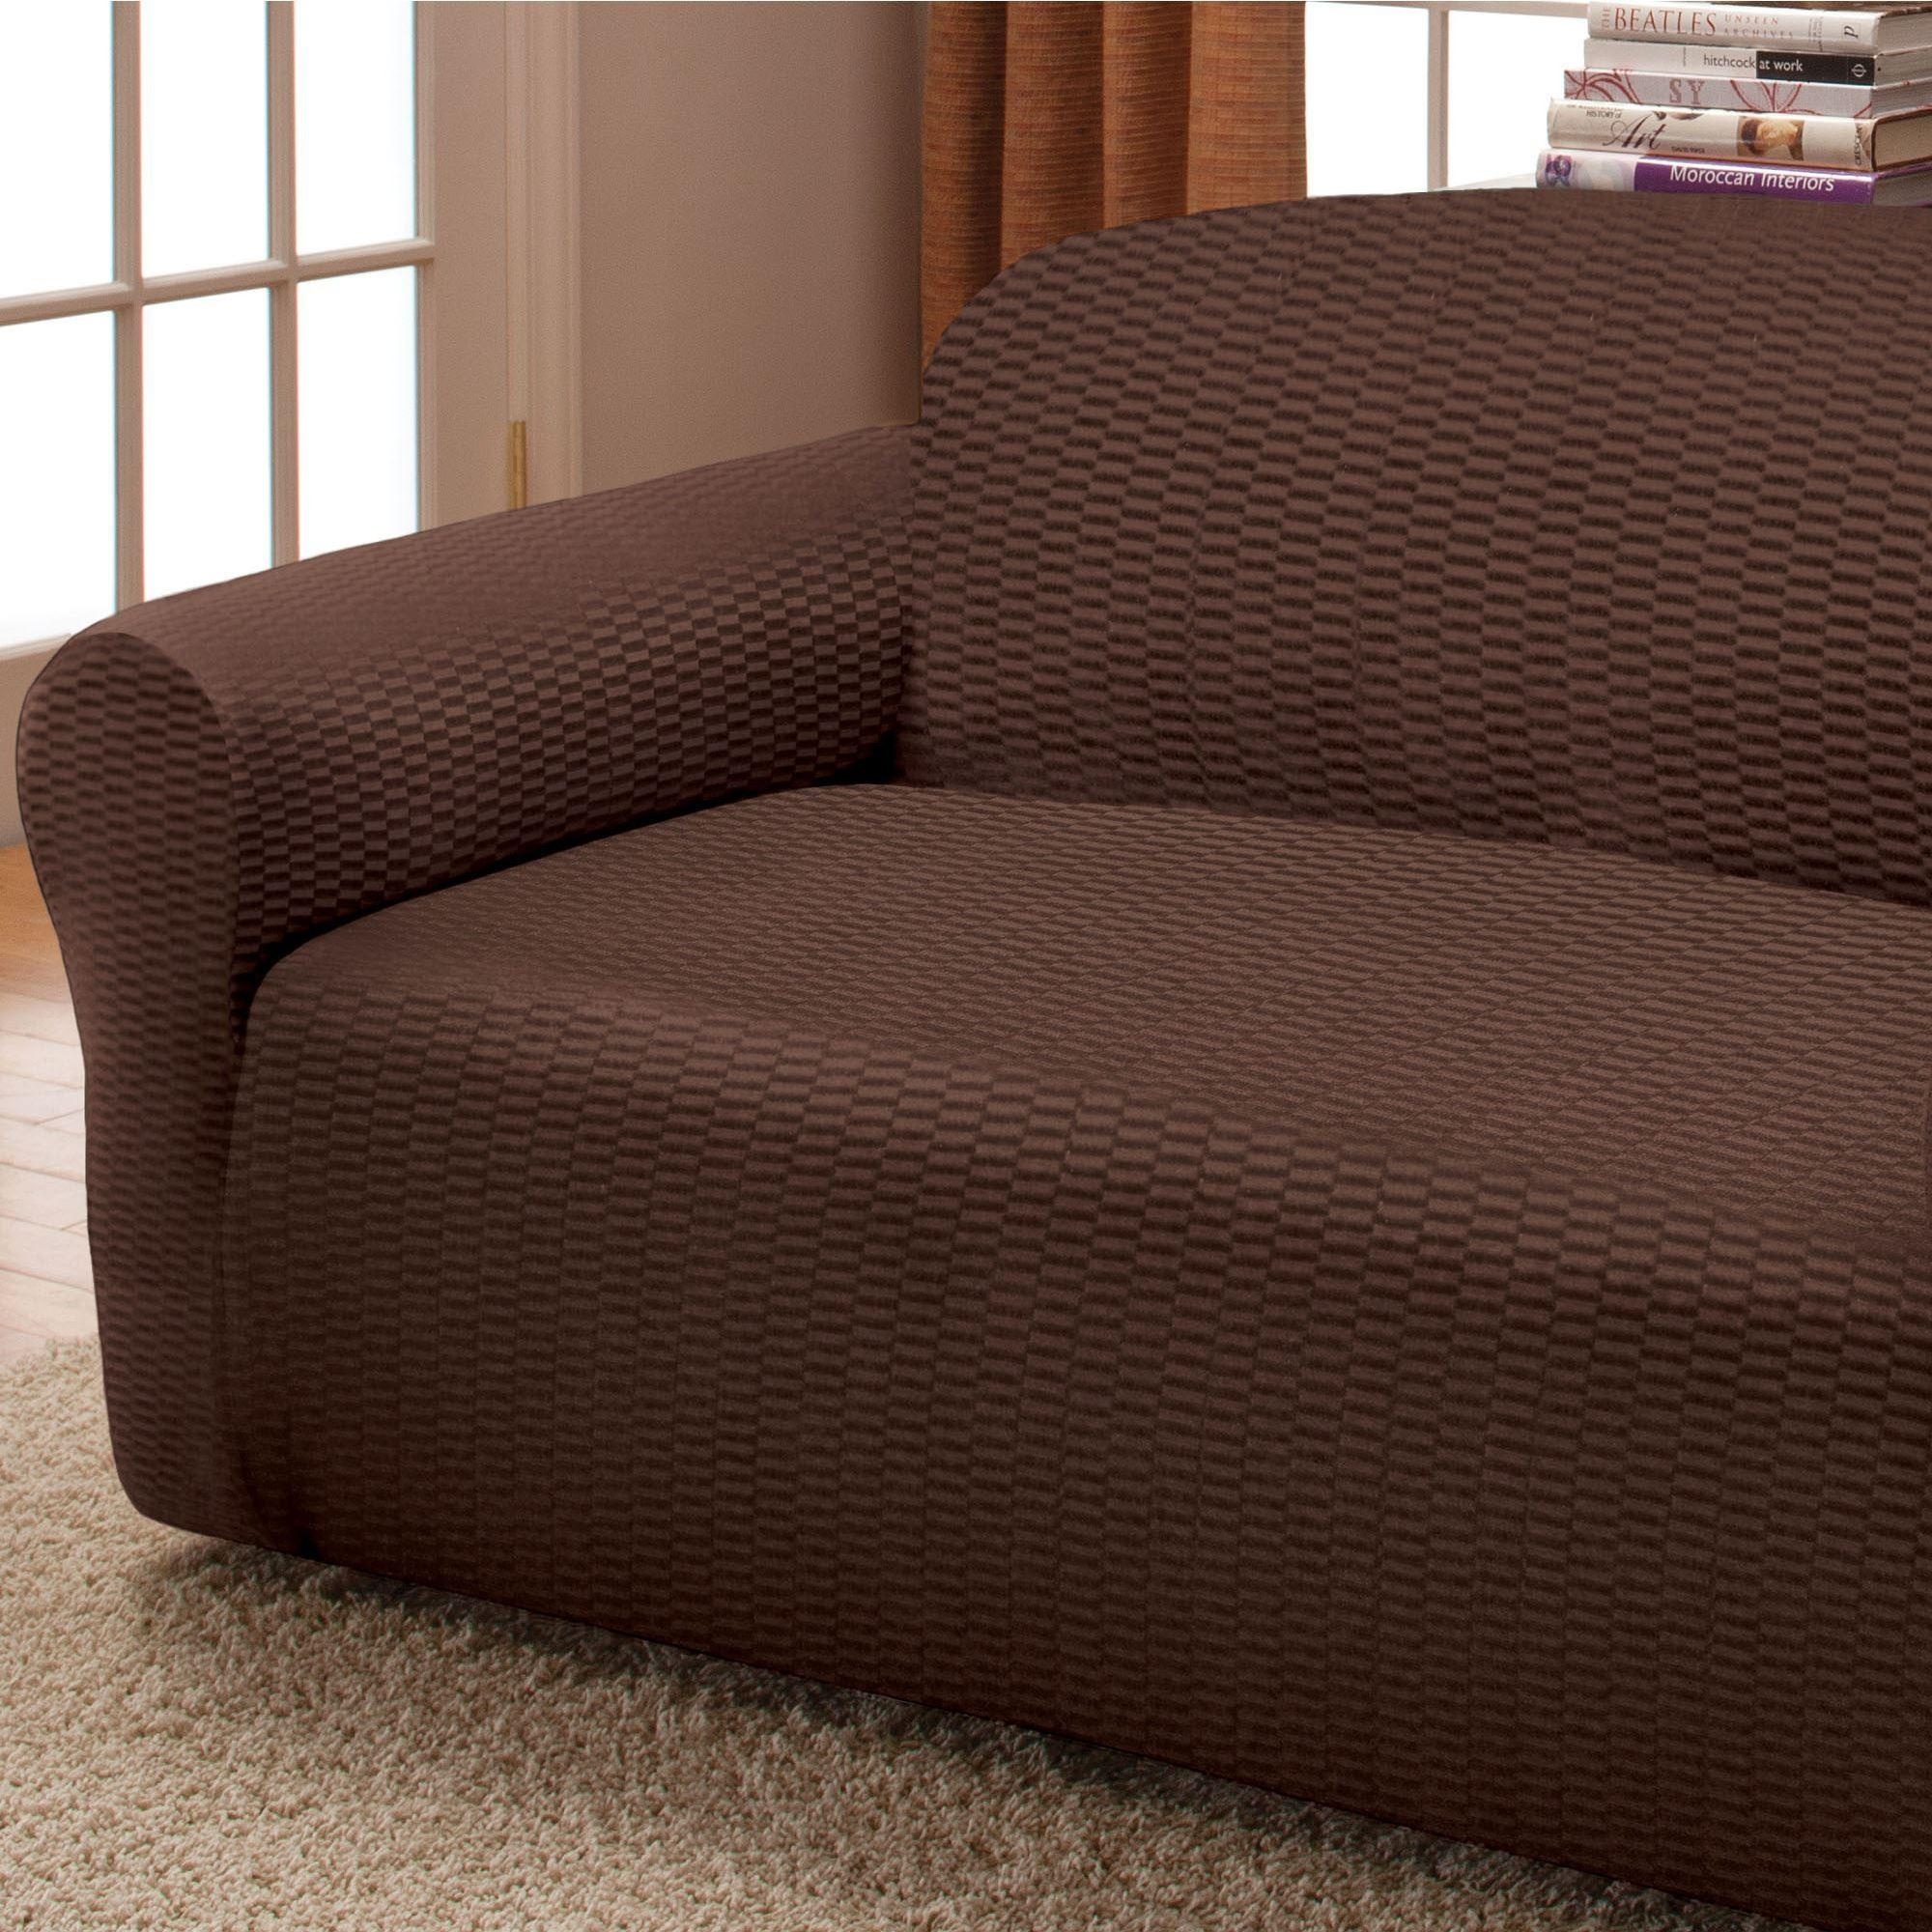 Raise The Bar Stretch Sofa Slipcovers Throughout Stretch Slipcover Sofas (Image 11 of 20)